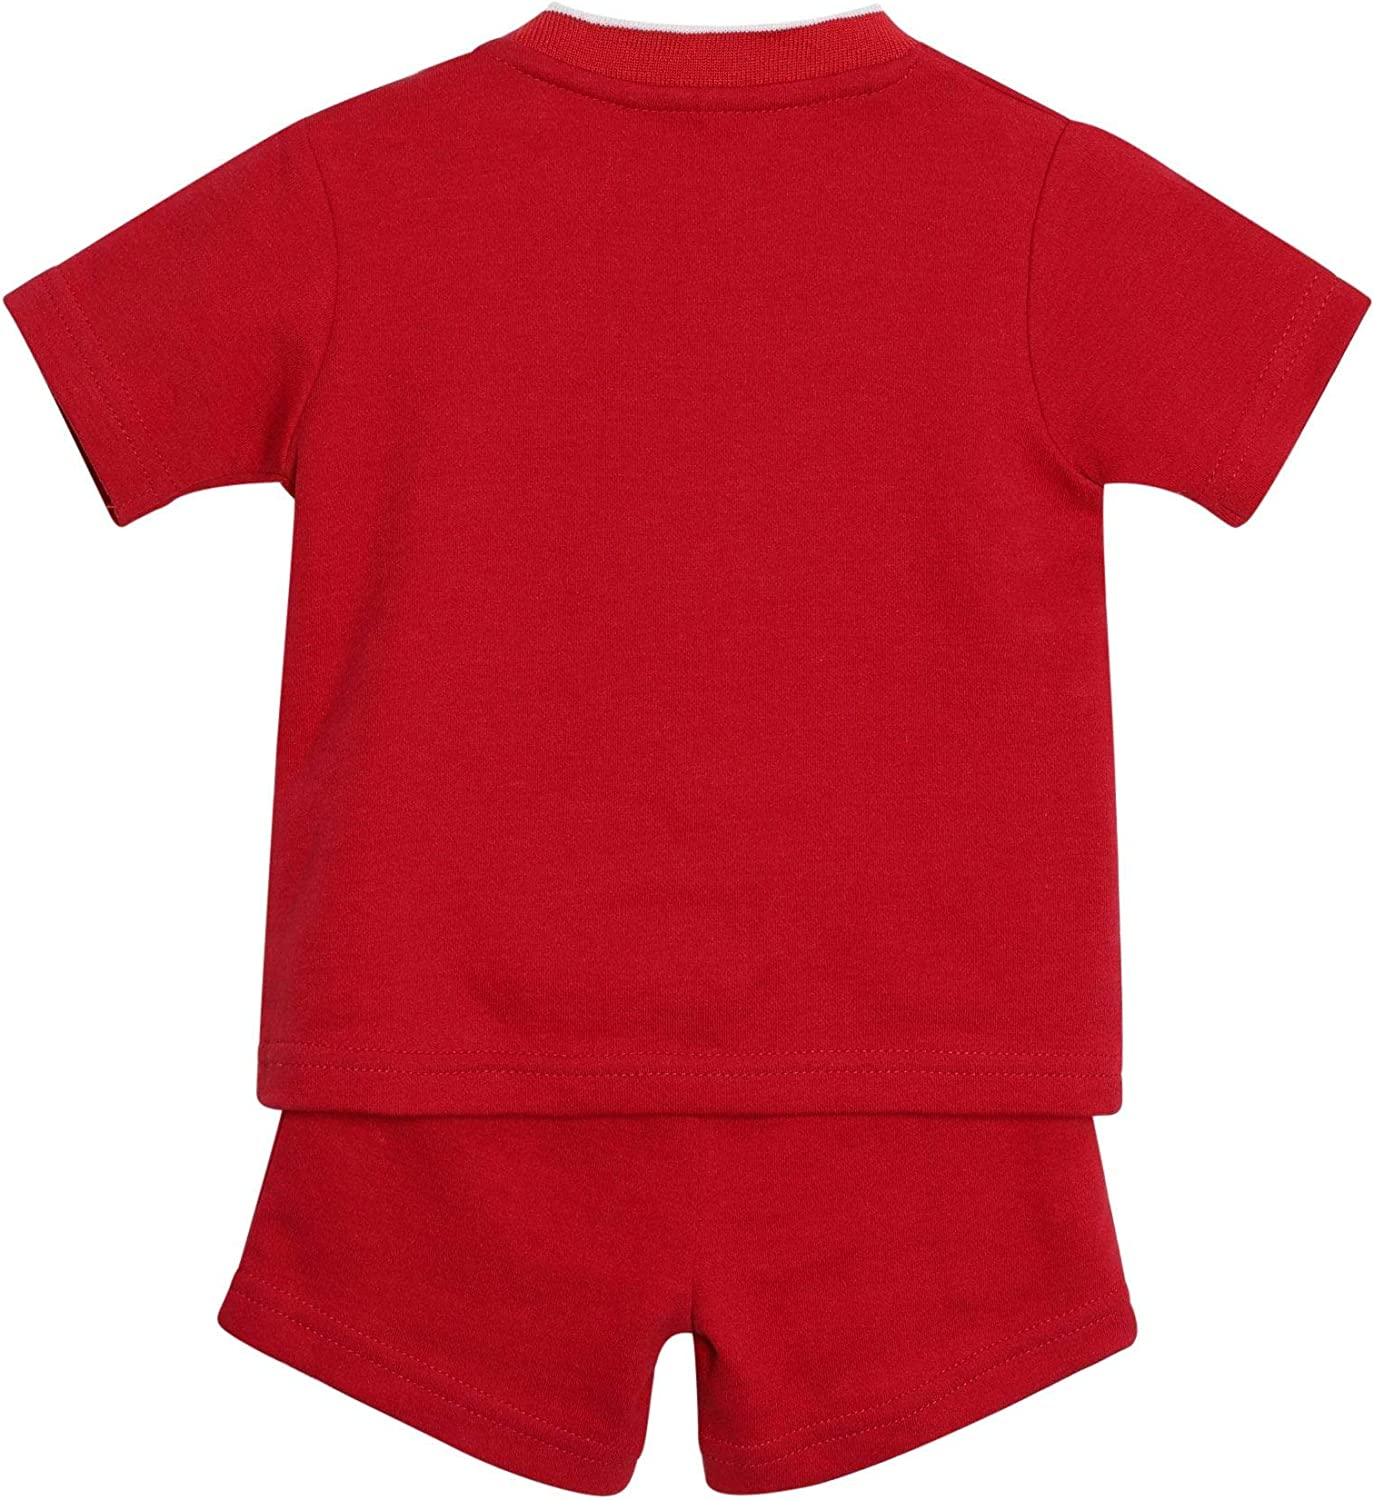 Liverpool FC Baby Kit Bodysuit 19//20 LFC Official